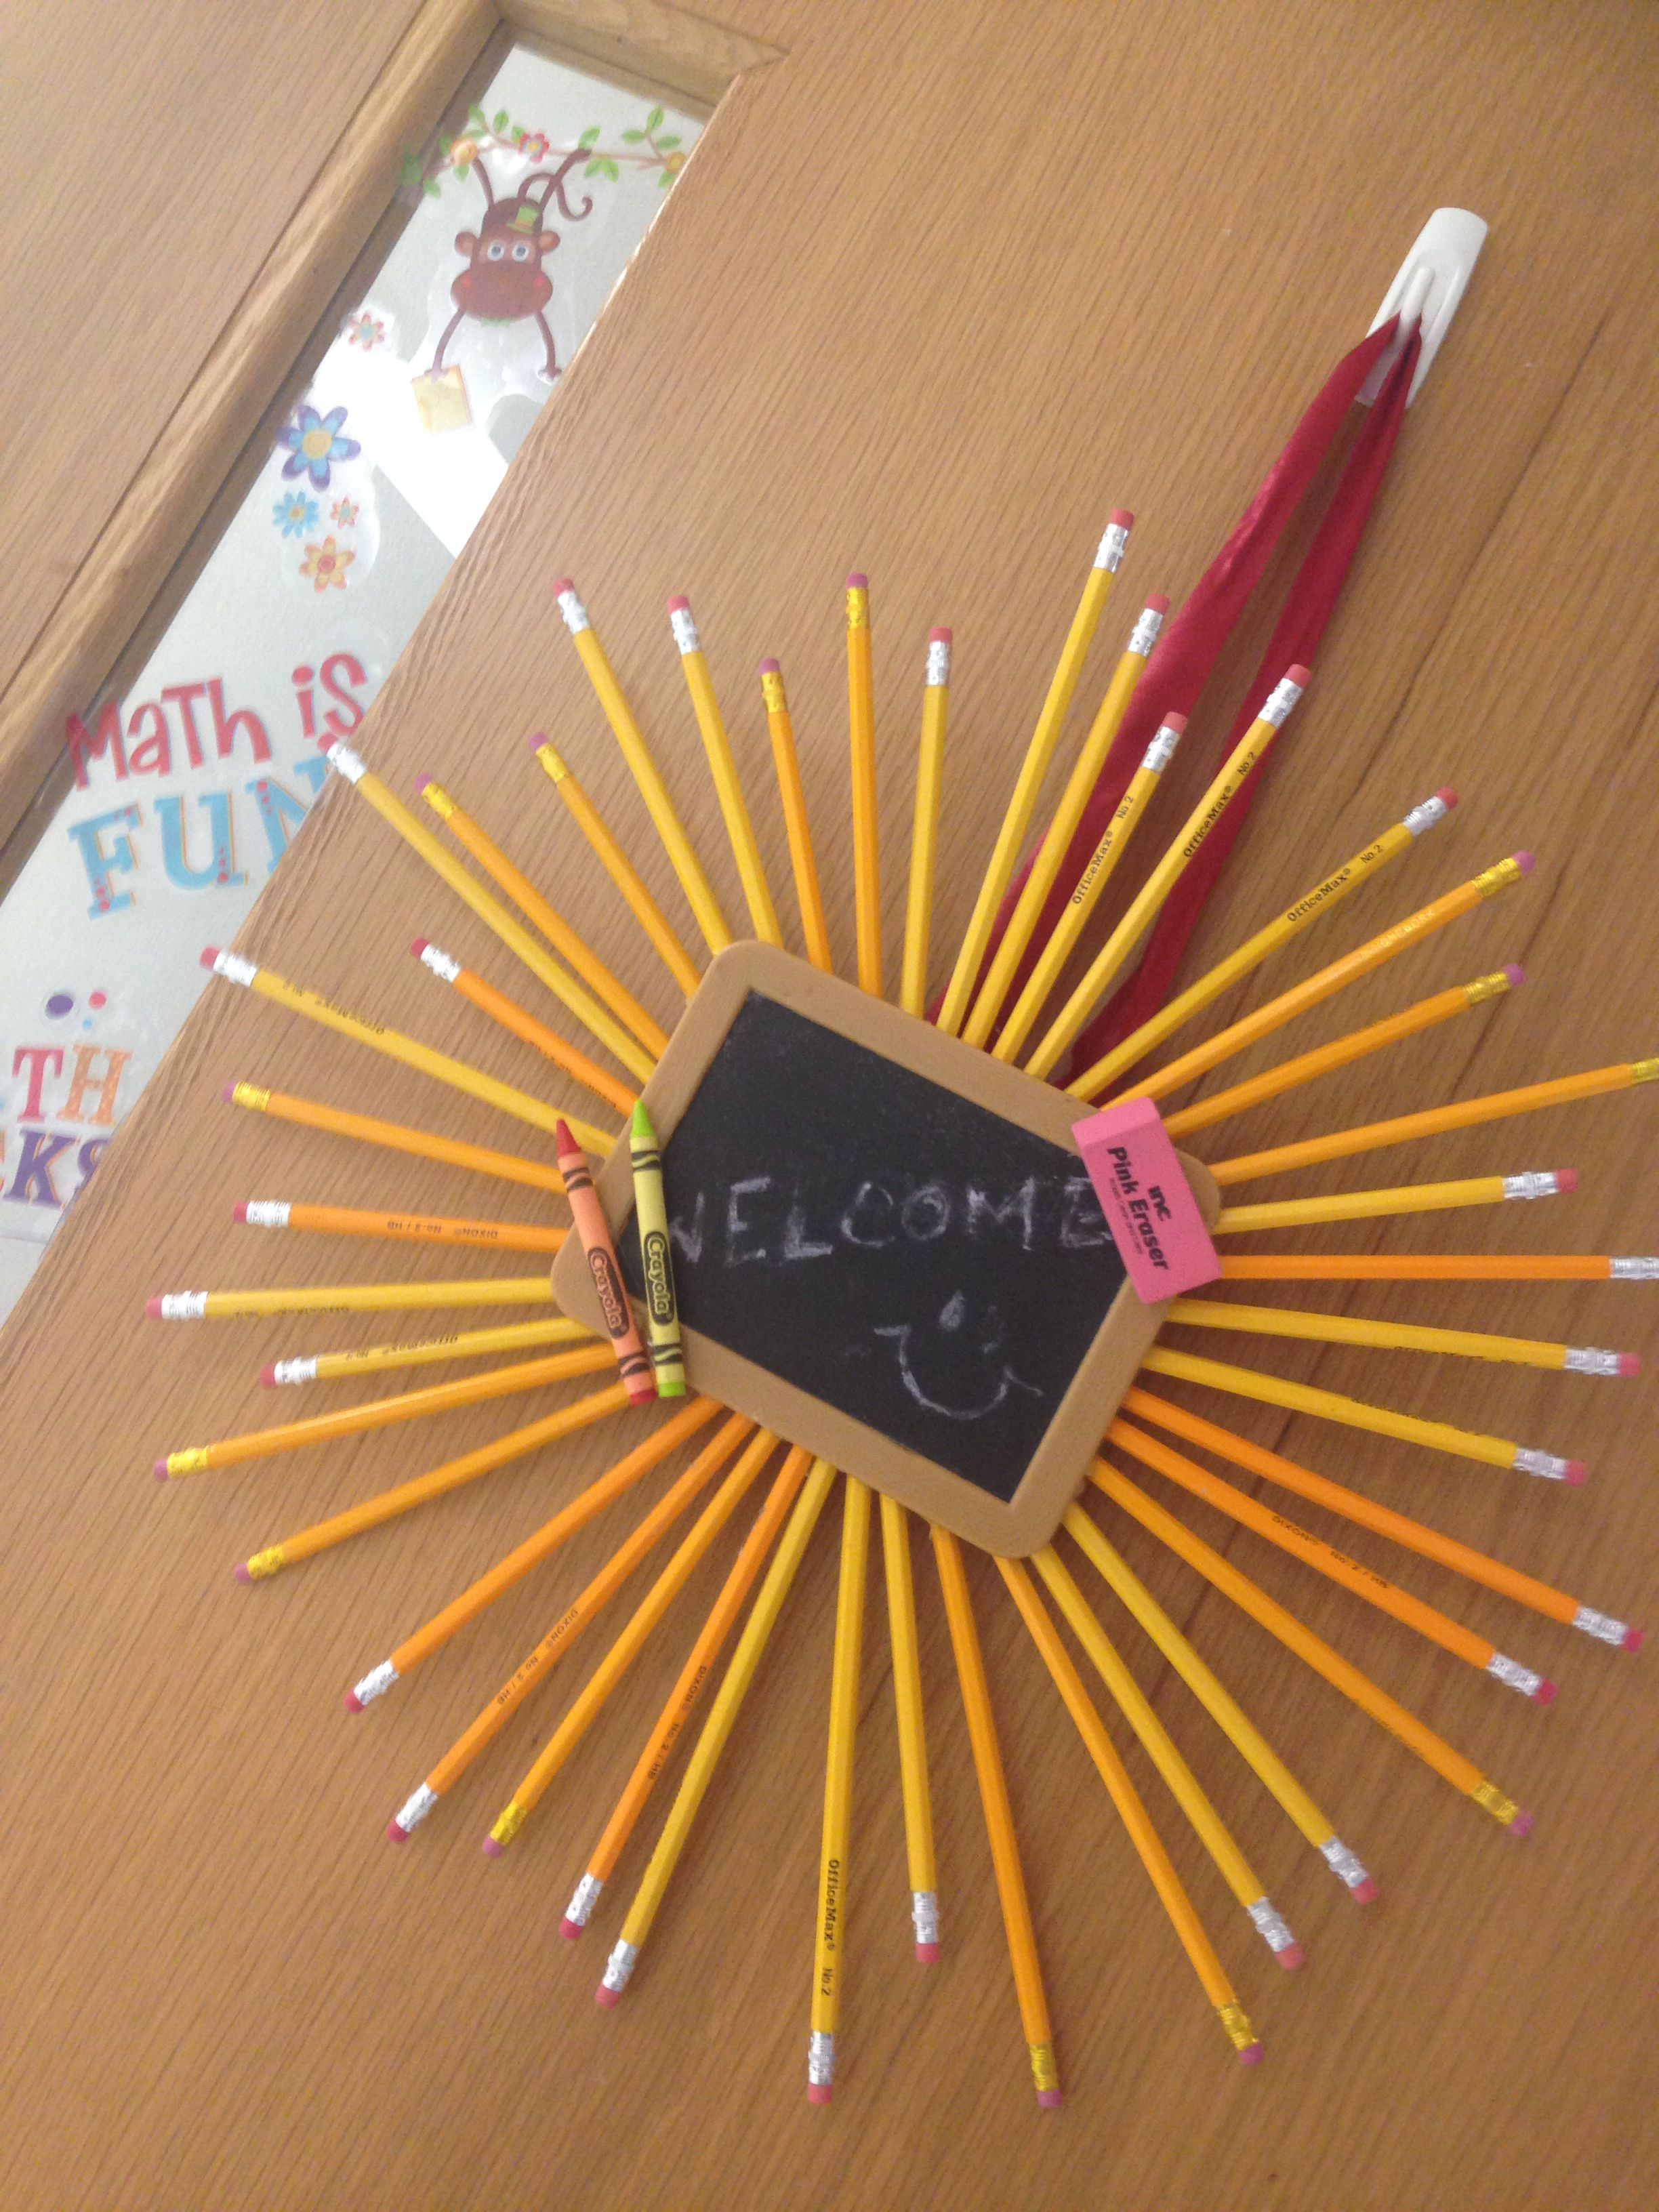 diy pencil decoration for classroom door! made using hot glue, pencils, a slate, and crayons and erasers:) its super simple to make and looks great! enjoy!